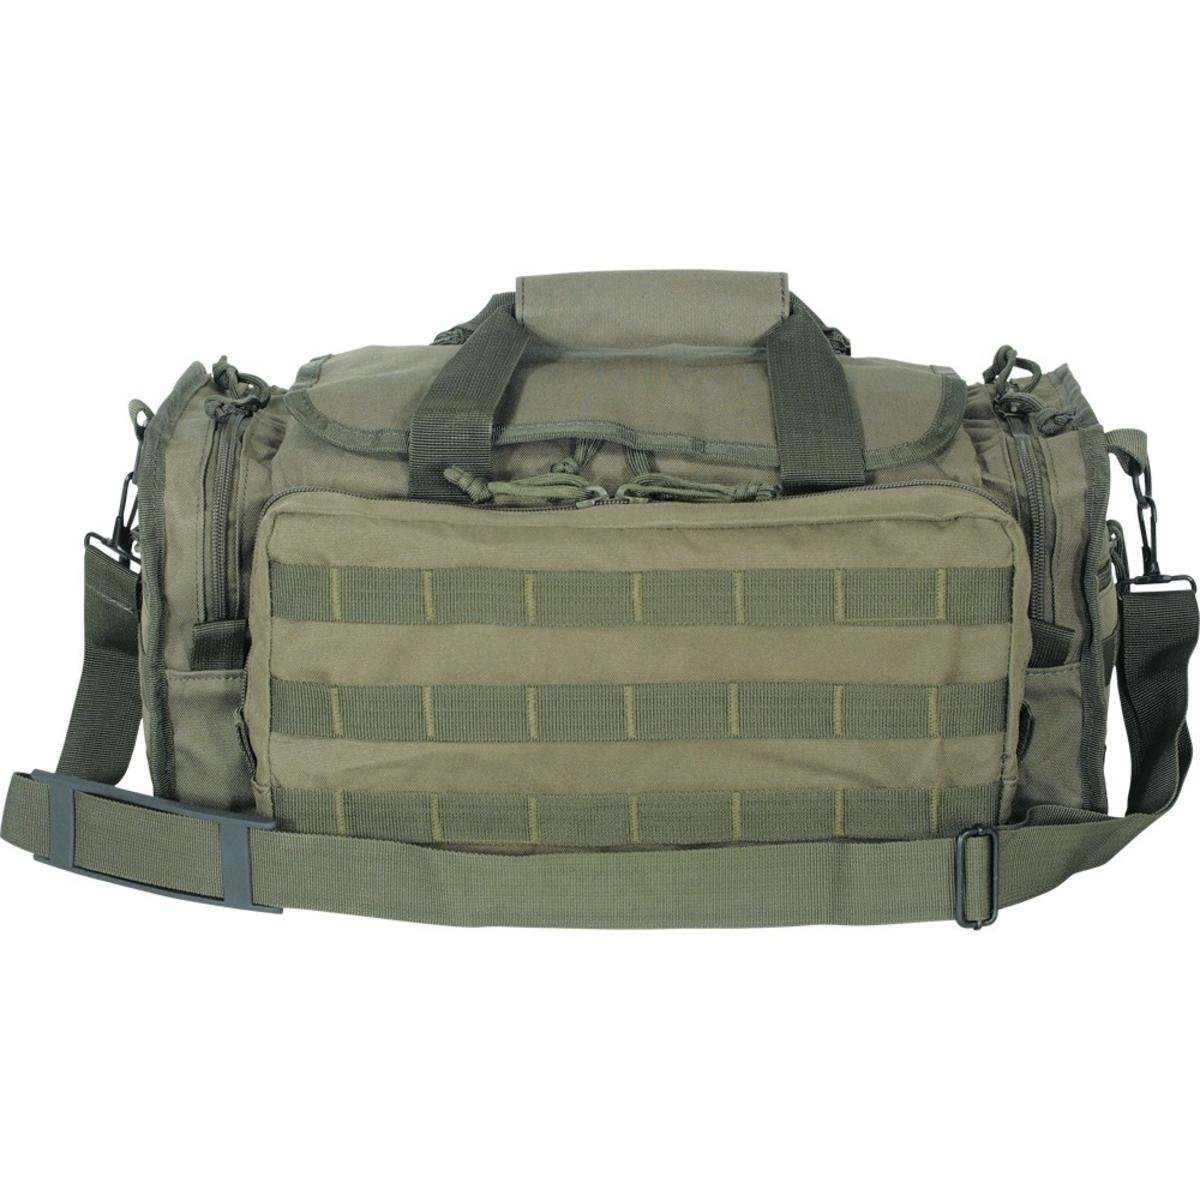 VooDoo Tactical Range Responder Bag, Black 25-0022001000